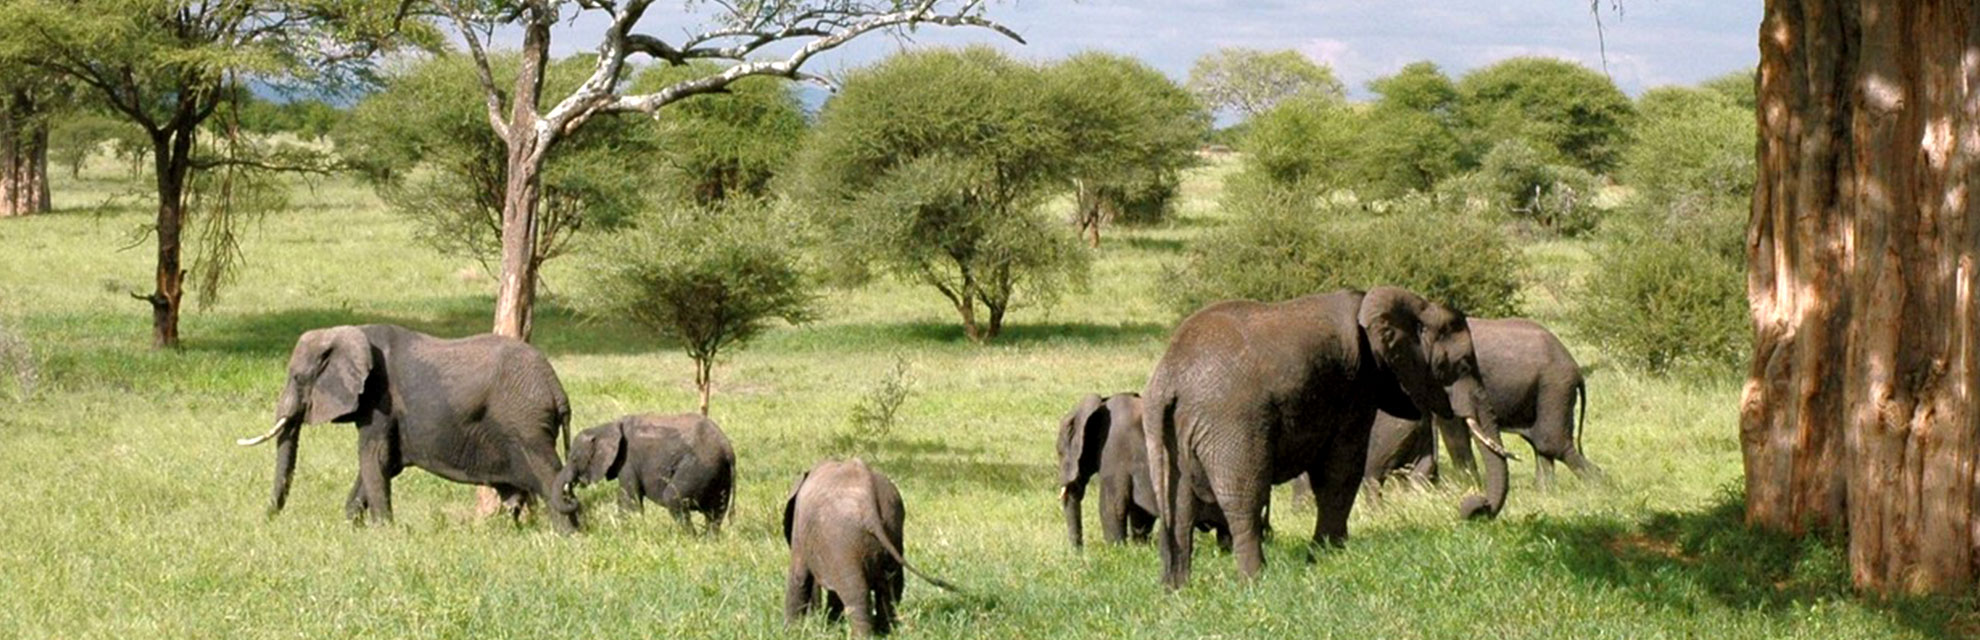 elephants on our kruger safari collection